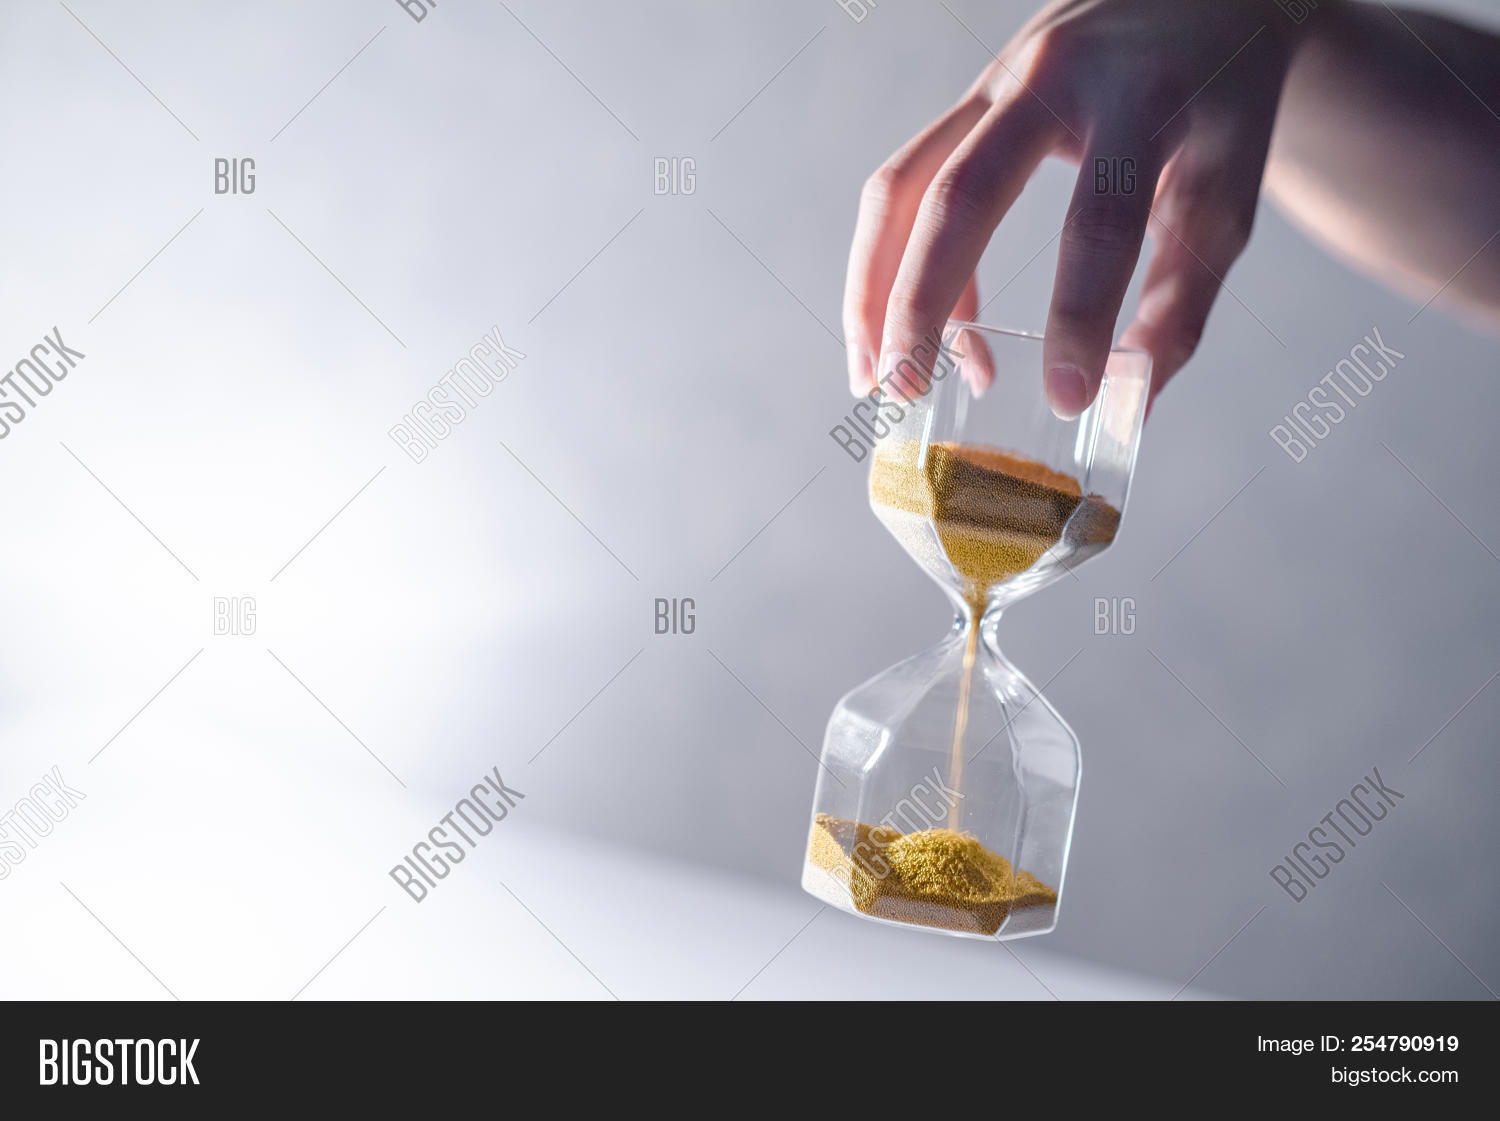 action,antique,background,brown,business,clock,close-up,concept,copy,countdown,deadline,decoration,falling,flowing,glass,hand,holding,hour,hourglass,idea,instrument,investment,life,male,management,minute,modern,old,old-fashioned,passing,past,patience,pressure,reflection,retirement,retro,running,sand,sandglass,shape,space,speed,stress,symbol,table,time,timer,urgency,vintage,white